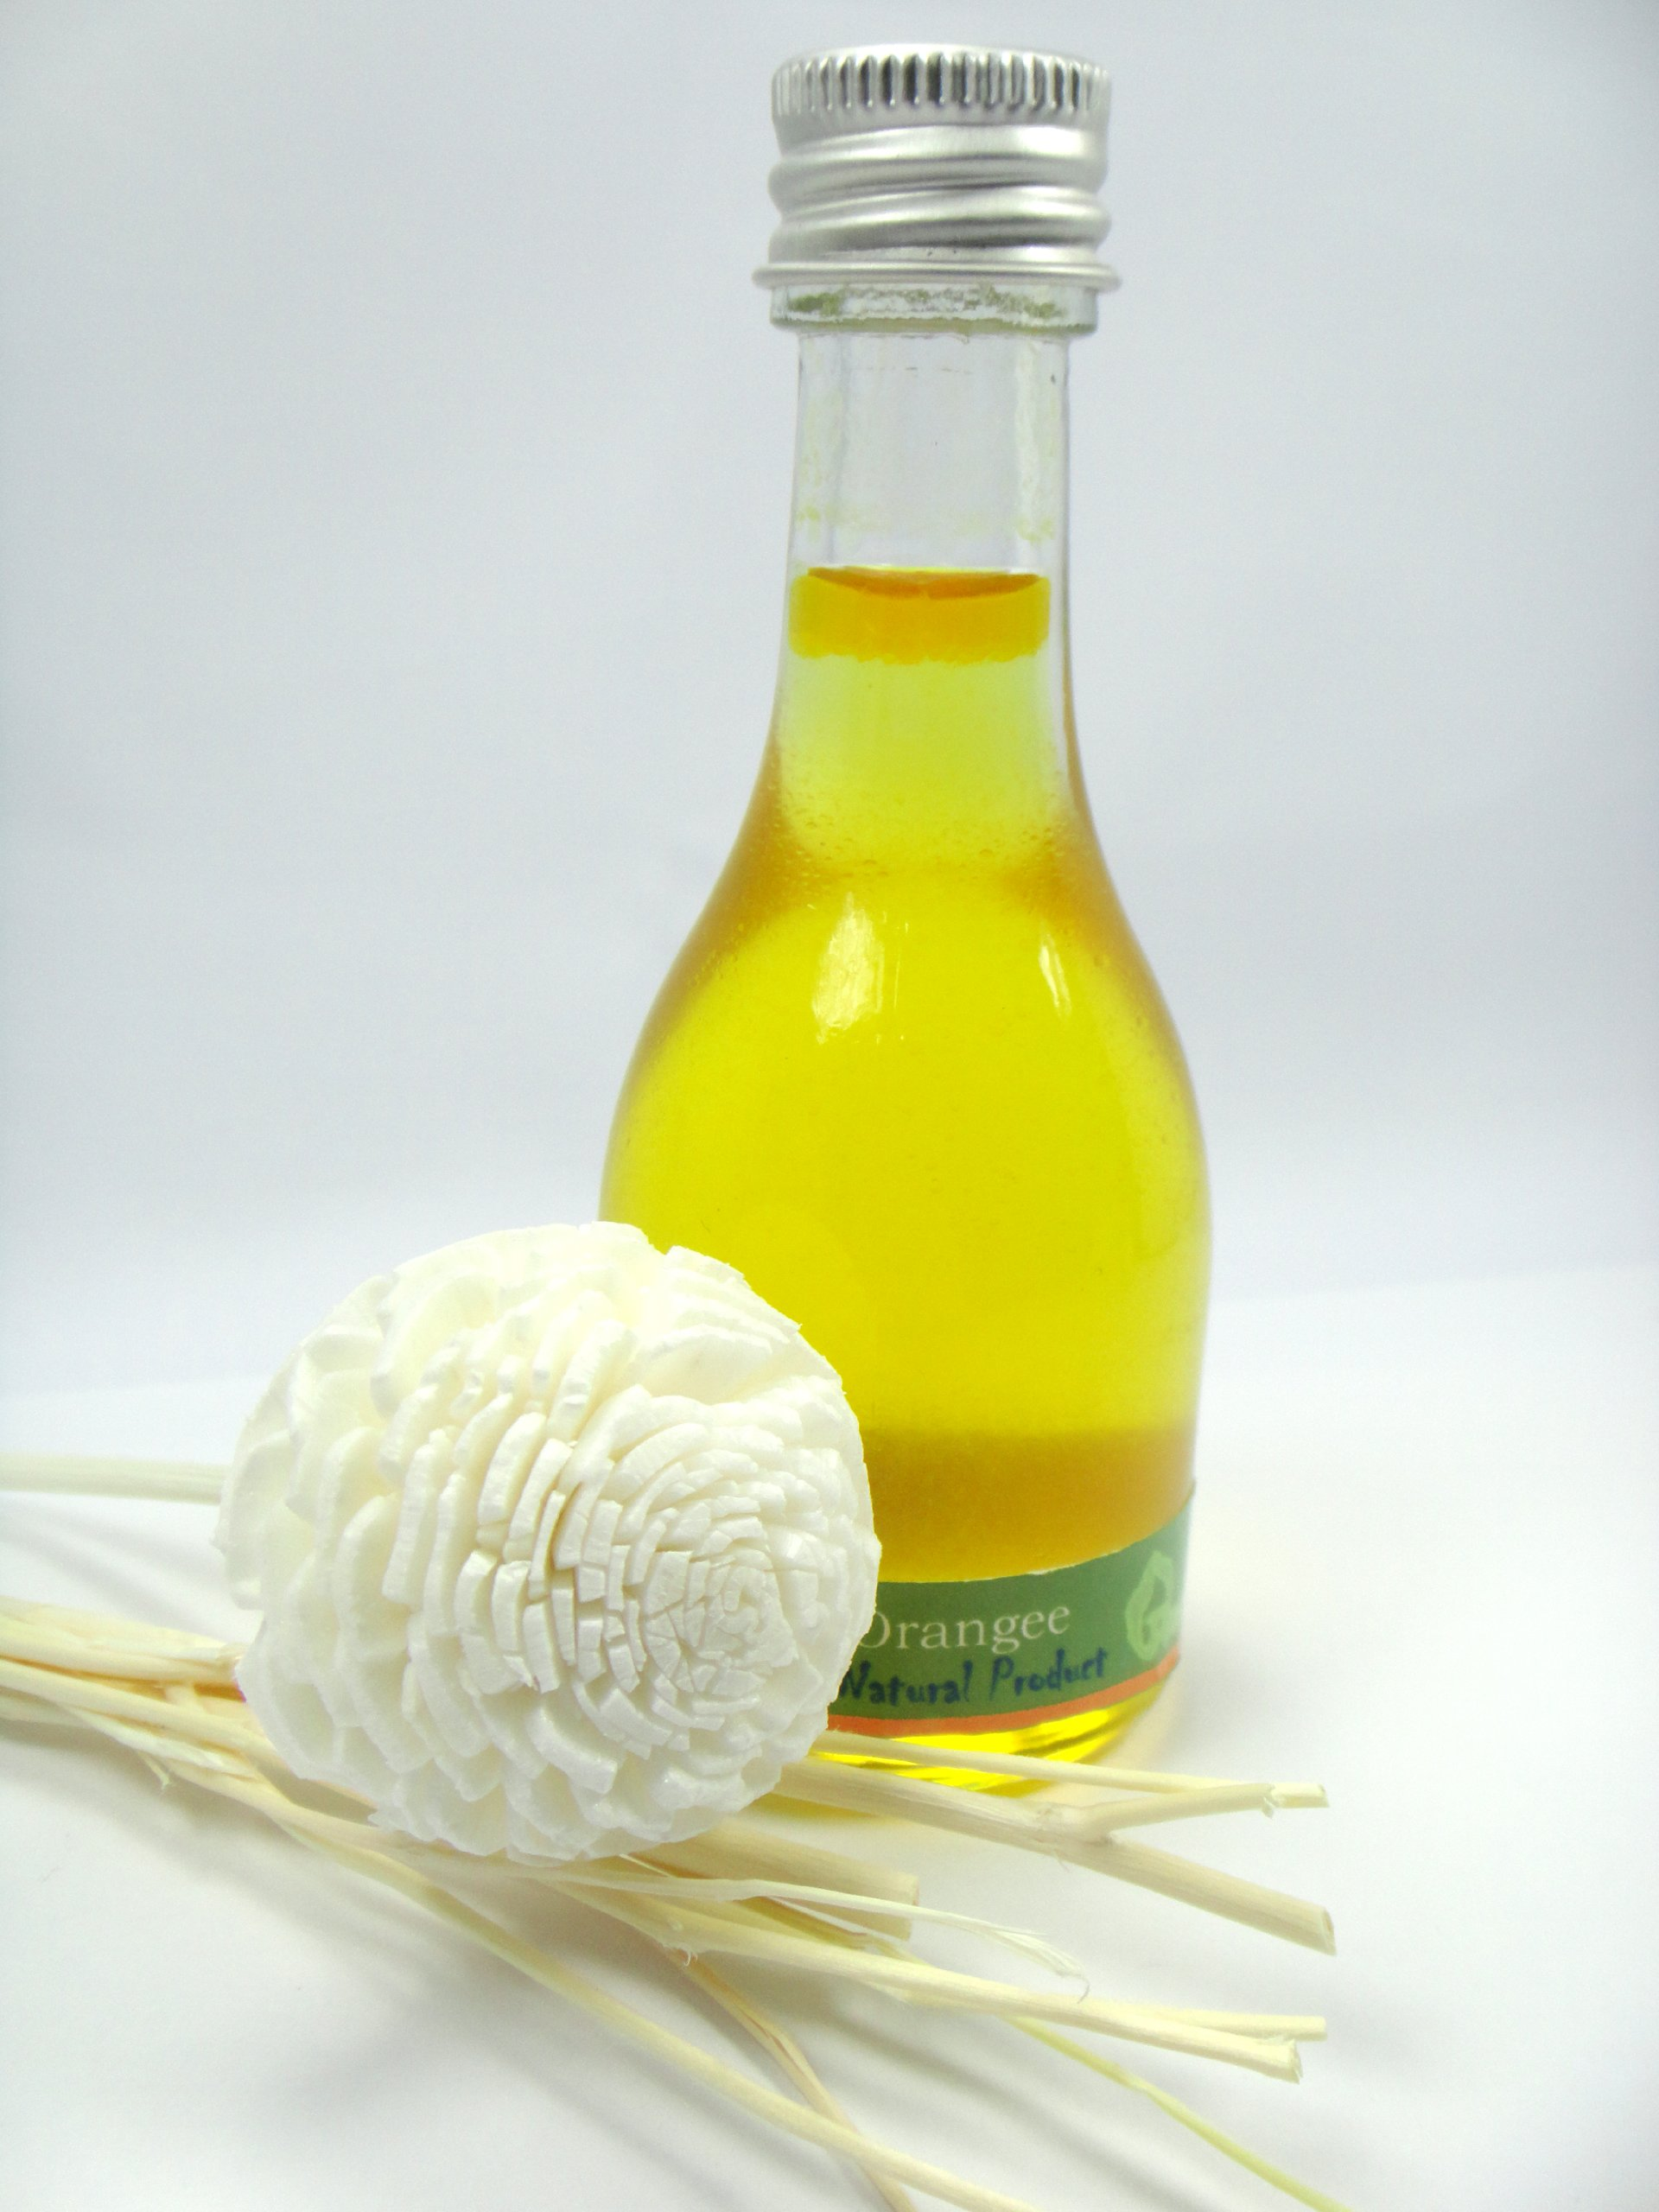 ORANGE Reed Diffuser Fragrance Essential Oil Reed Diffuser Blossom 30ml/1 Oz. by Thailand by Thailand